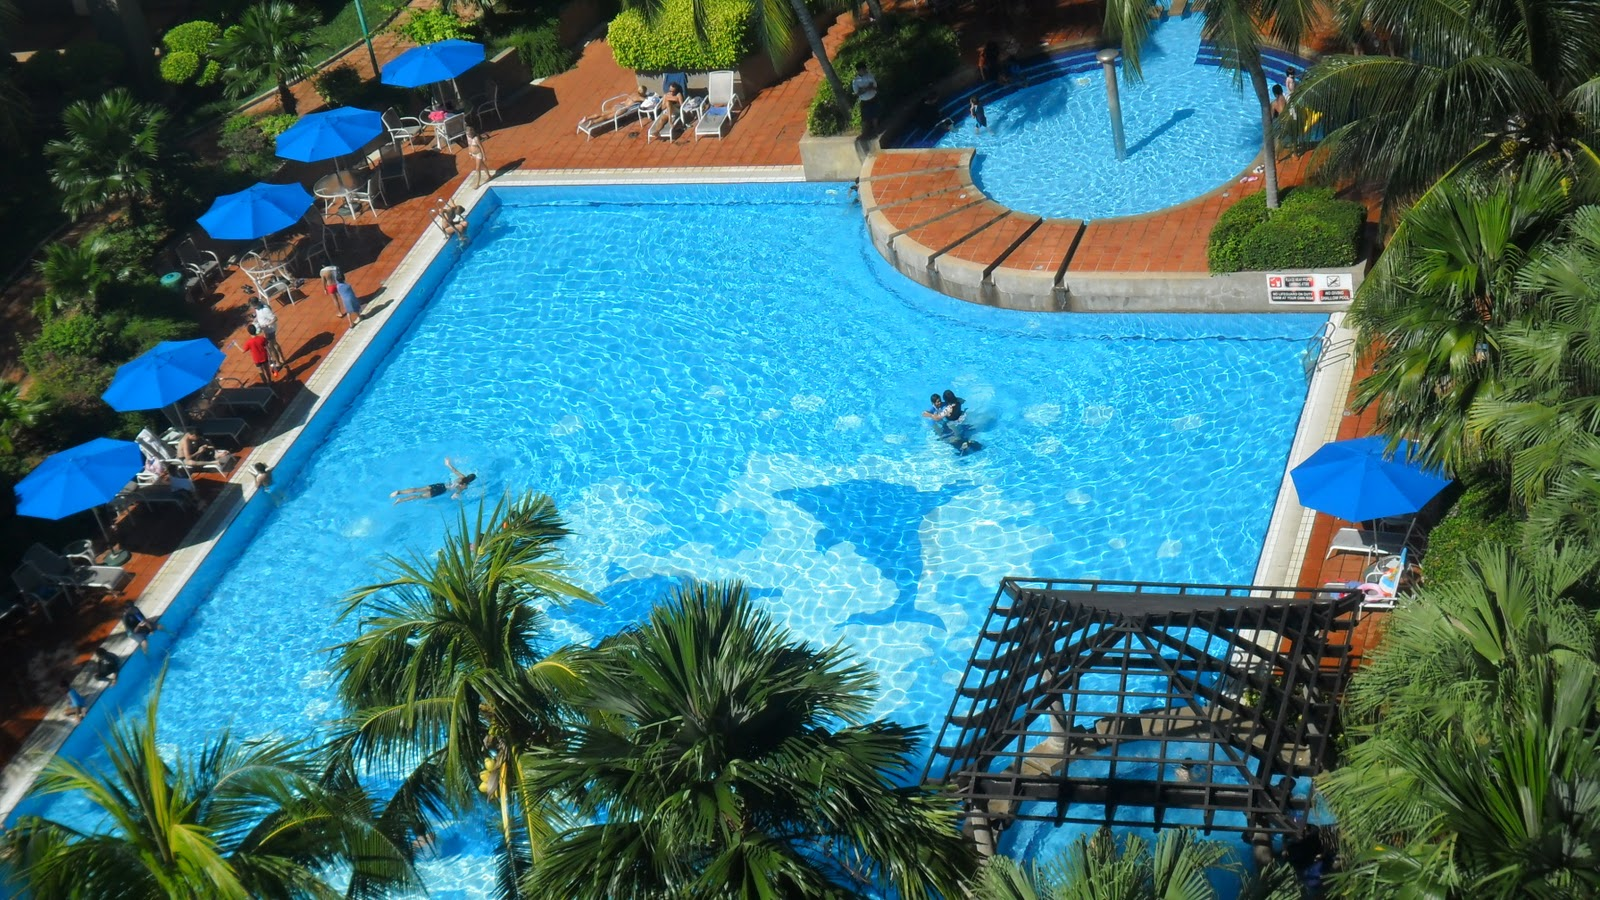 Hotel At Melaka With Swimming Pool Flower U0027s Of My Life Yang Paling Kita Suka